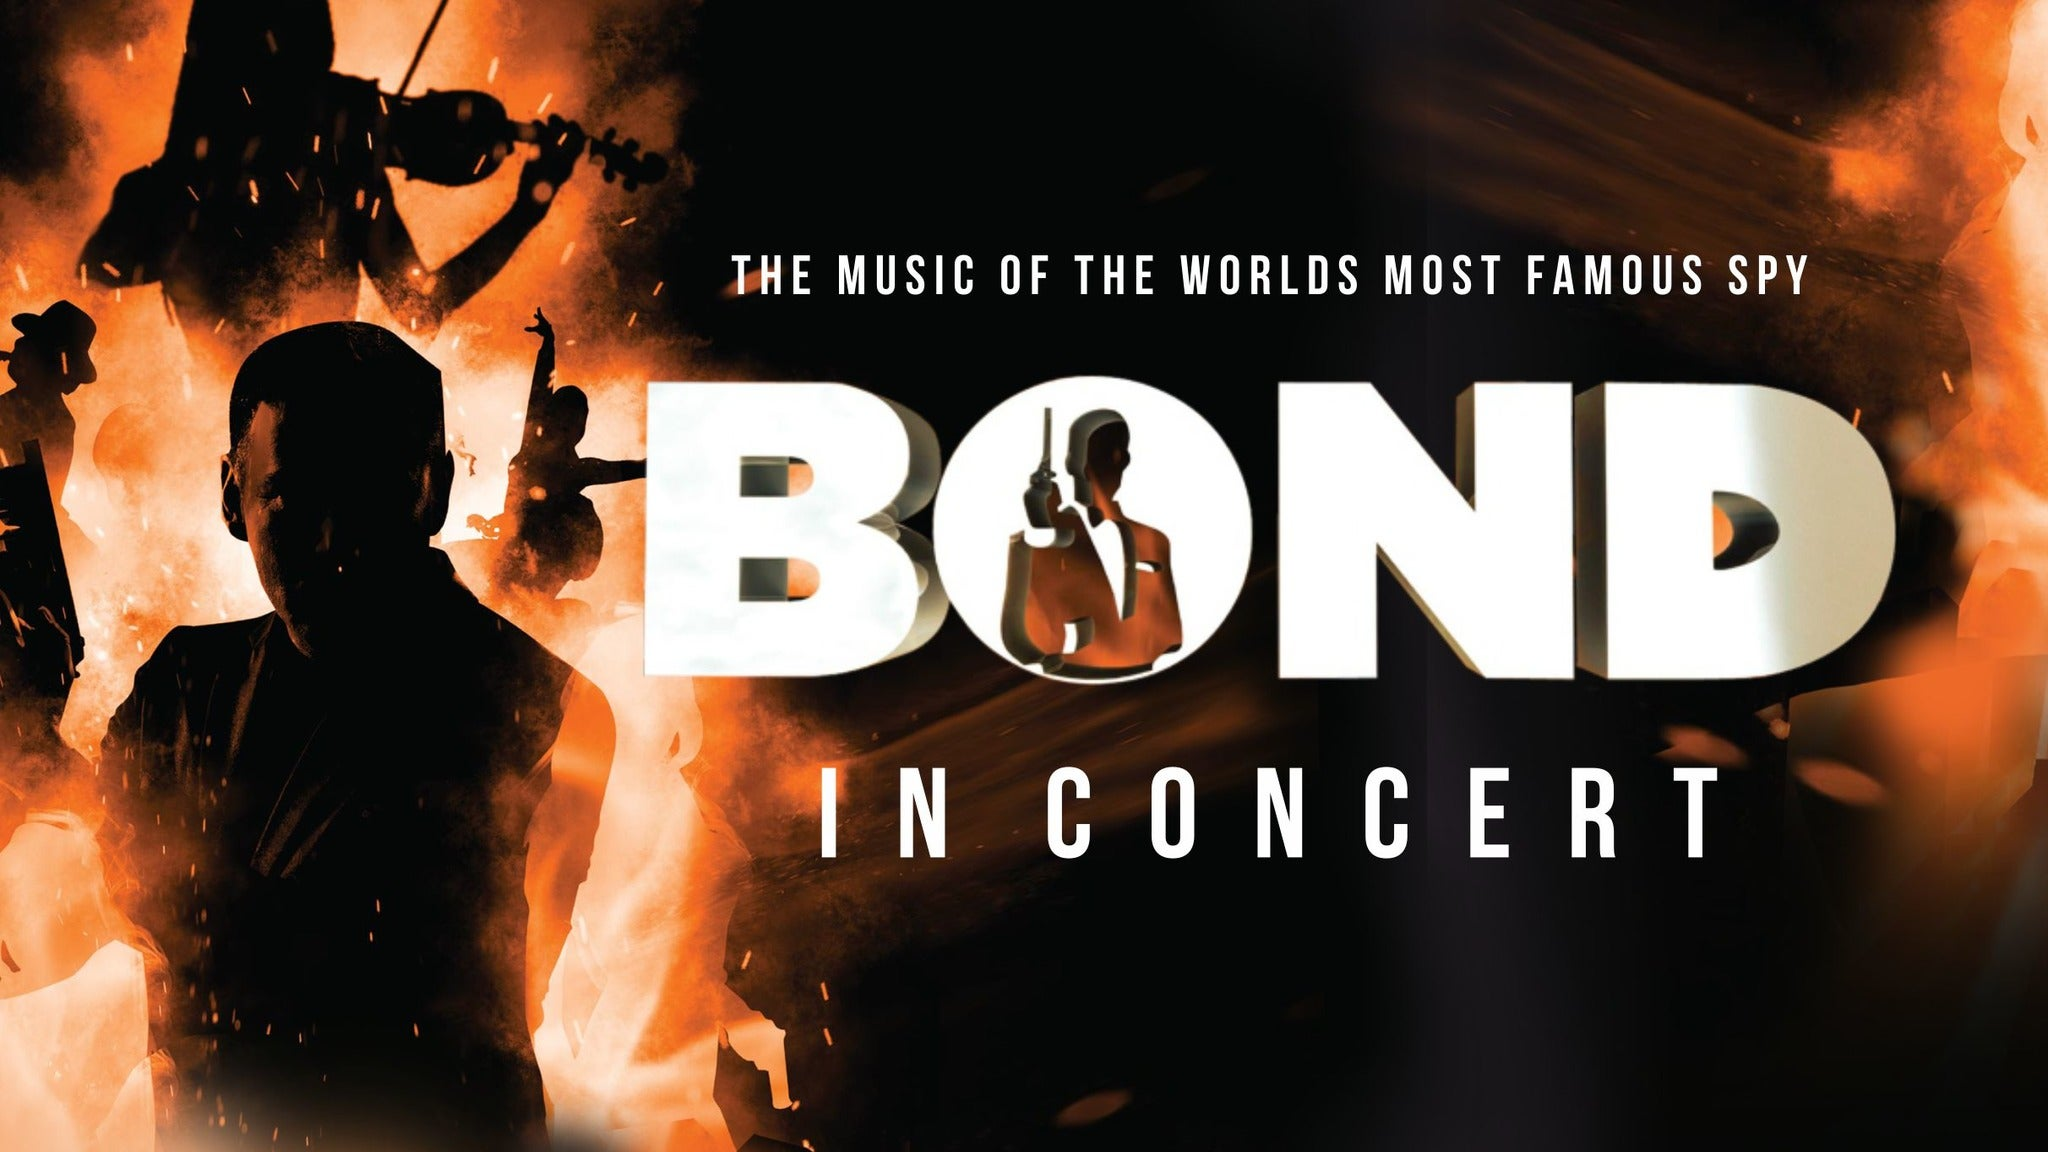 James Bond - in Concert Event Title Pic